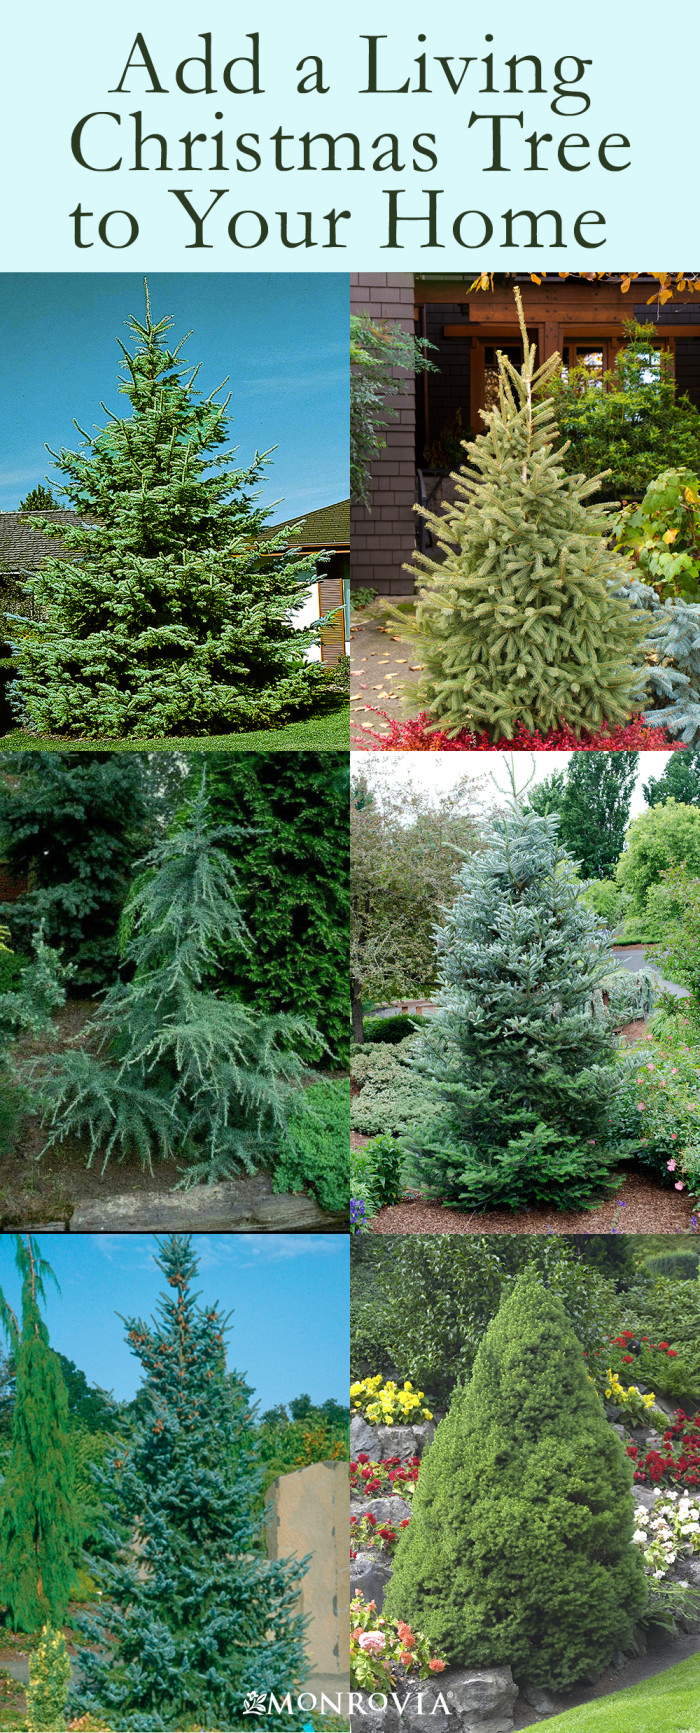 How to Buy and Care for a Living Christmas Tree